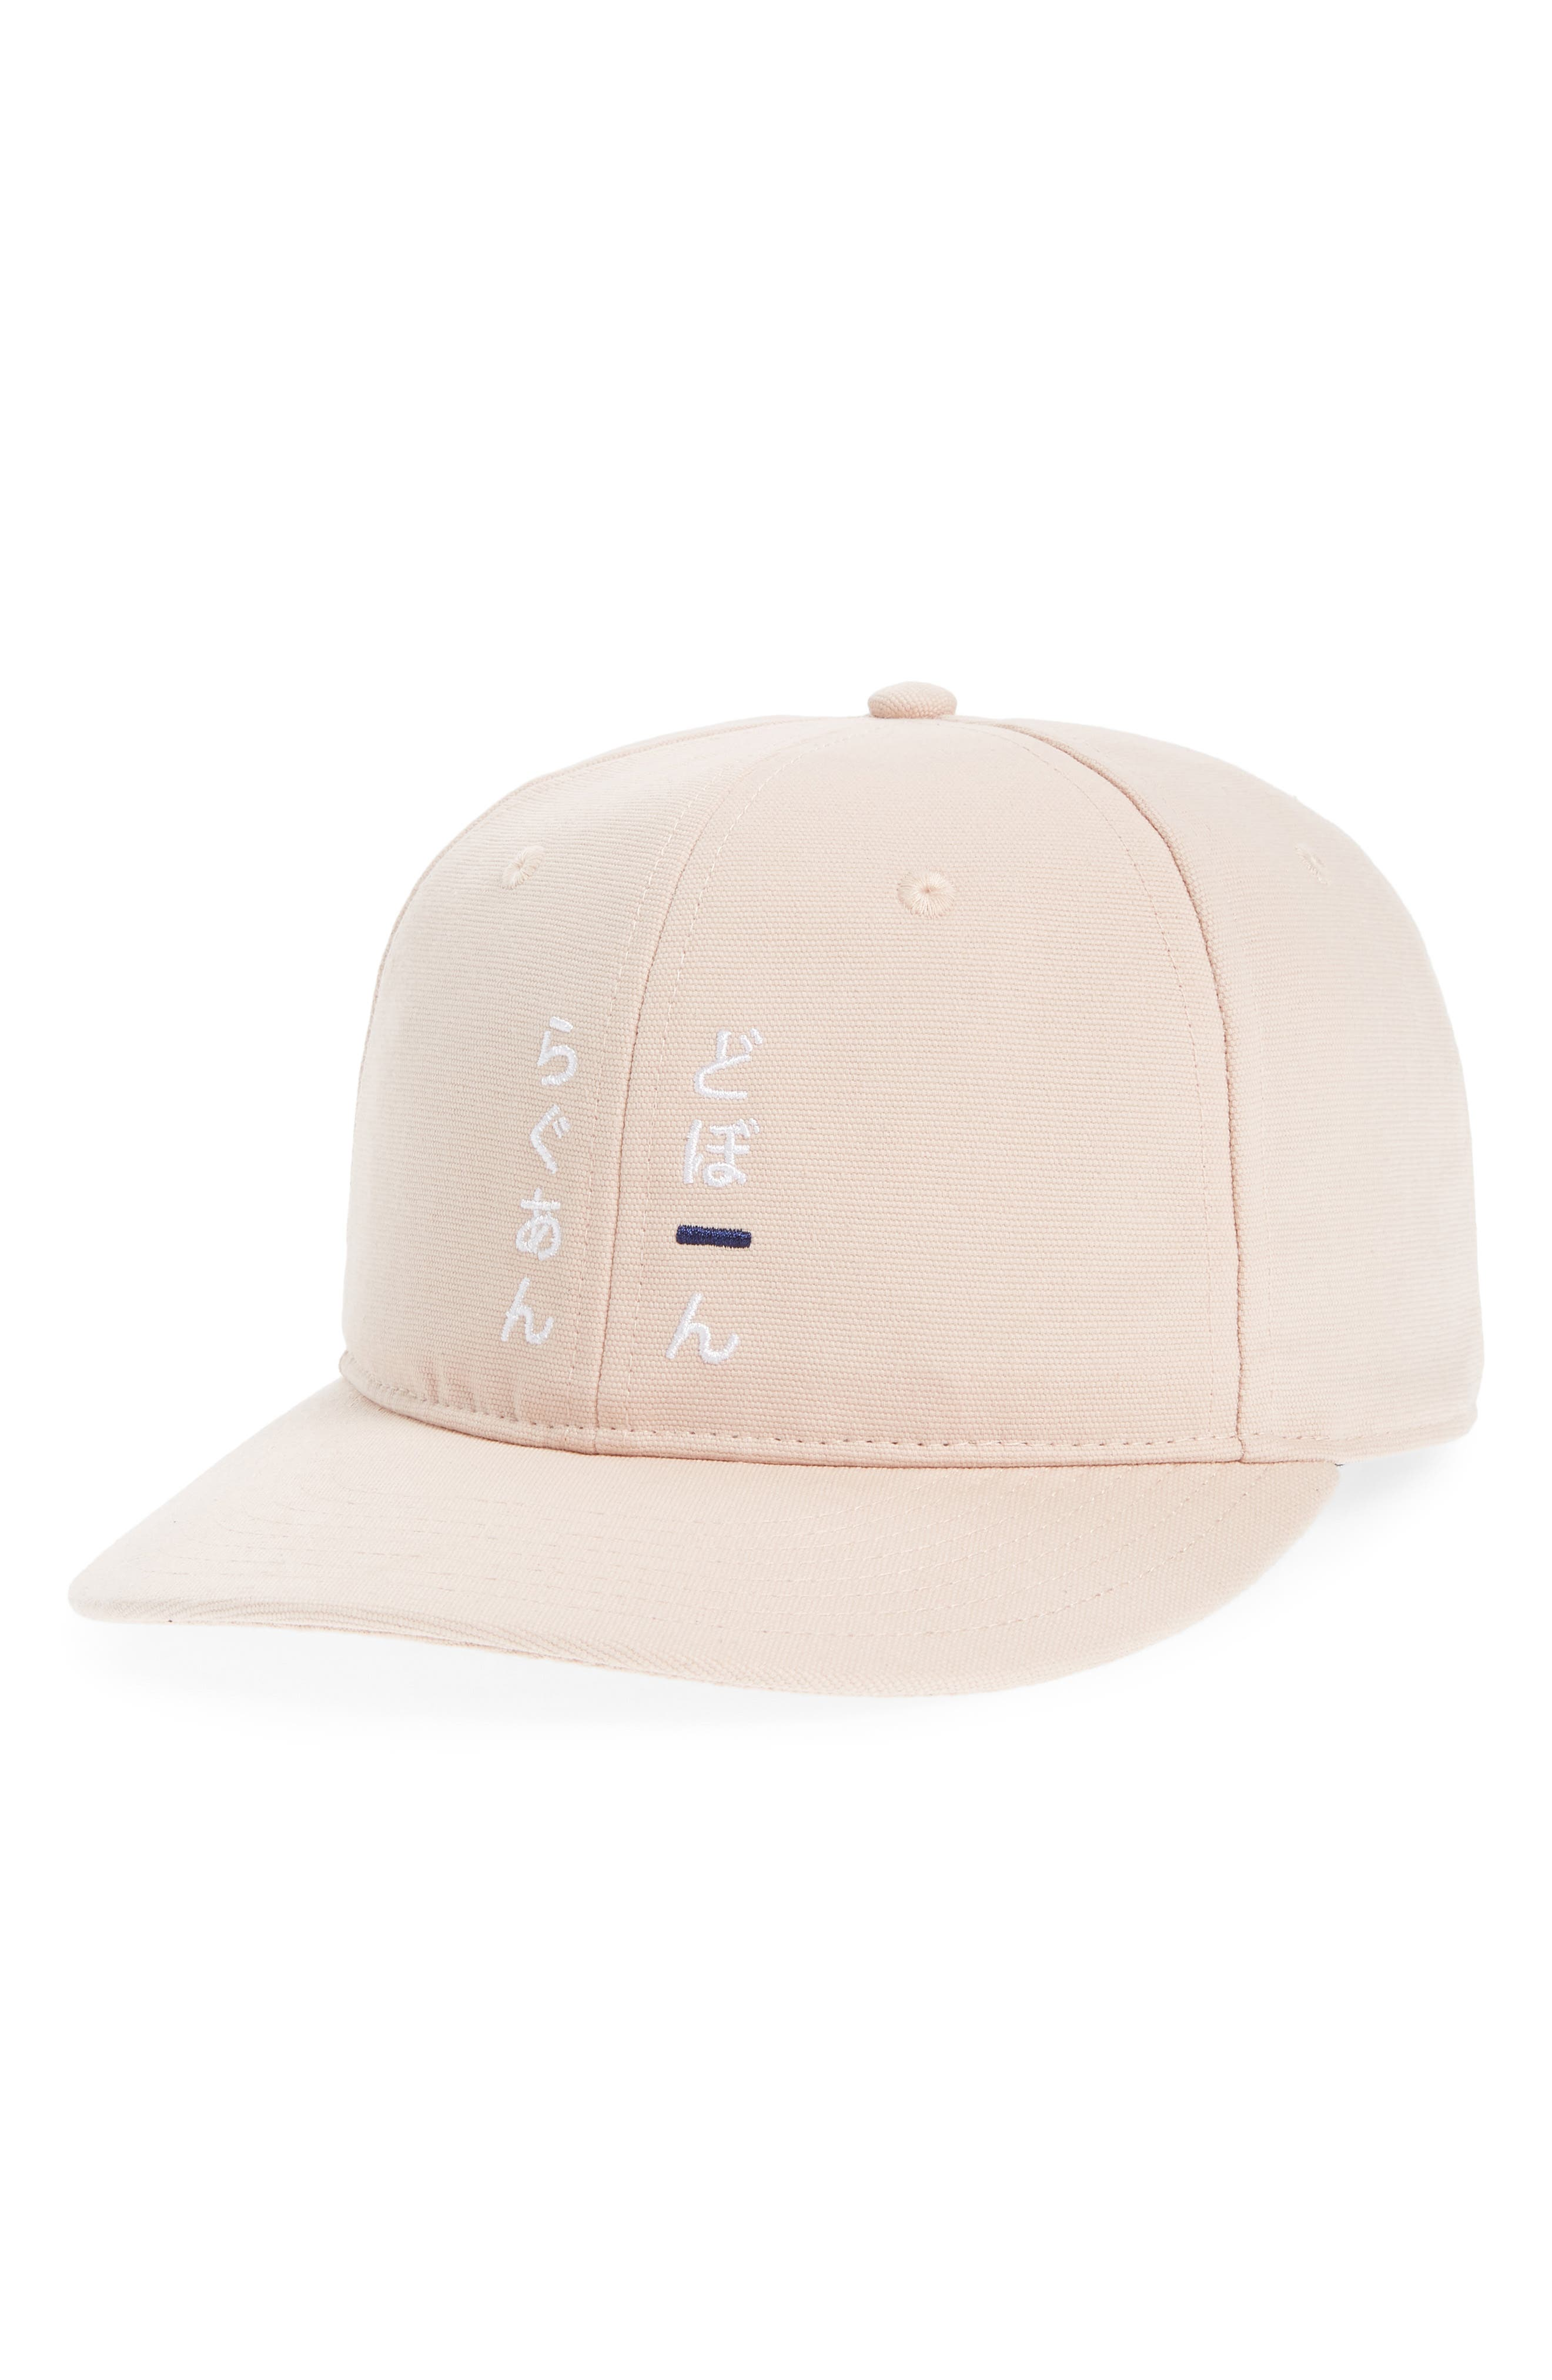 Dylan Embroidered Baseball Cap,                             Main thumbnail 1, color,                             DUSTY PINK